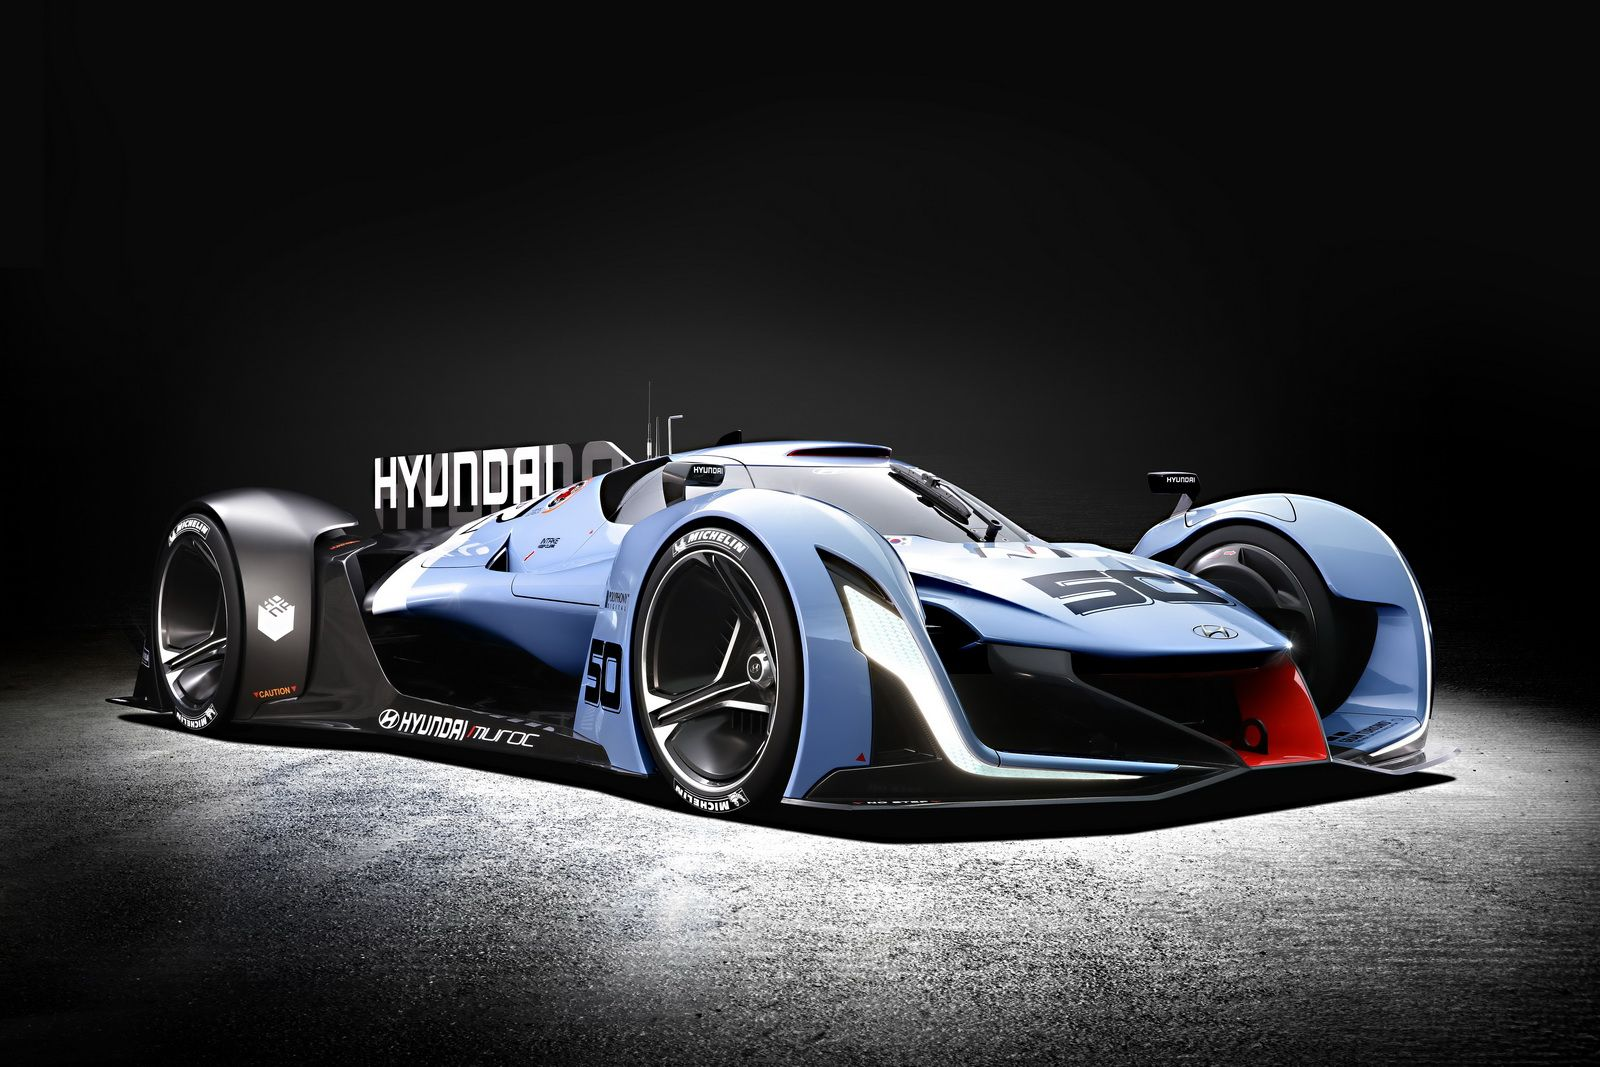 Hyundai S Genesis Going After Ferrari And Porsche With New Supercar Project Carscoops Futuristic Cars Super Cars Hyundai Motor